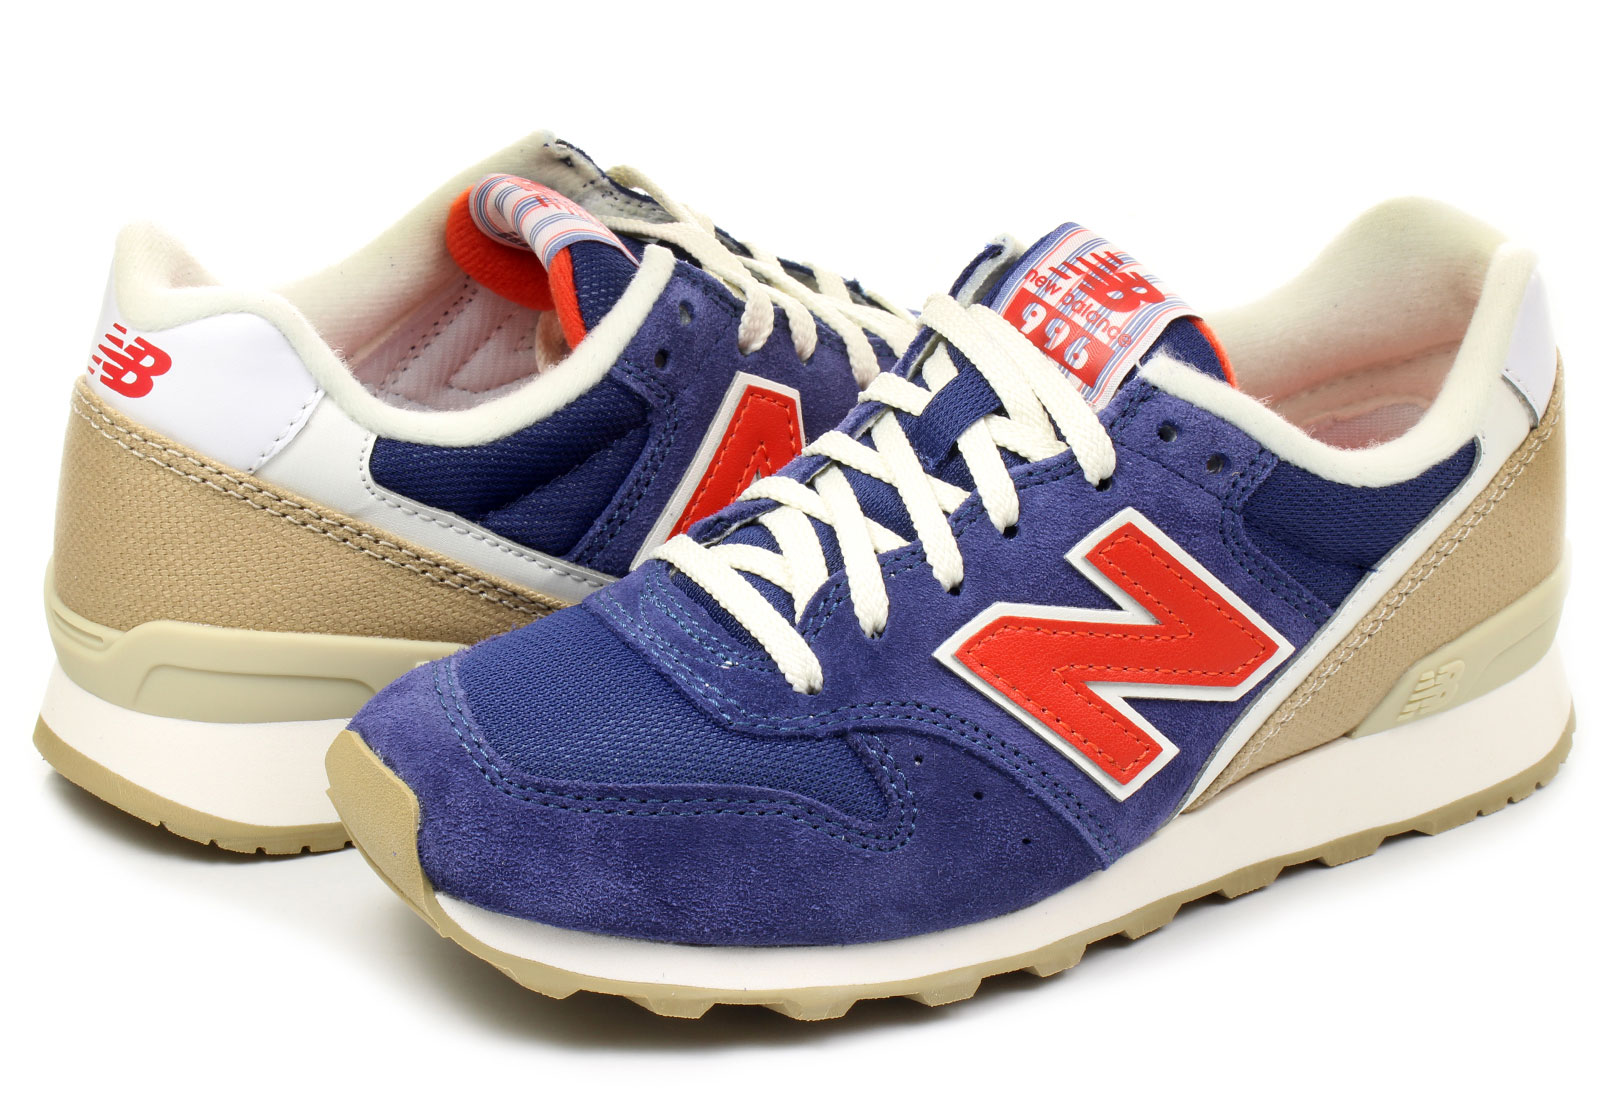 New Balance Shoes - Wr996 - WR996HG - Online shop for sneakers ... ebda6f1686